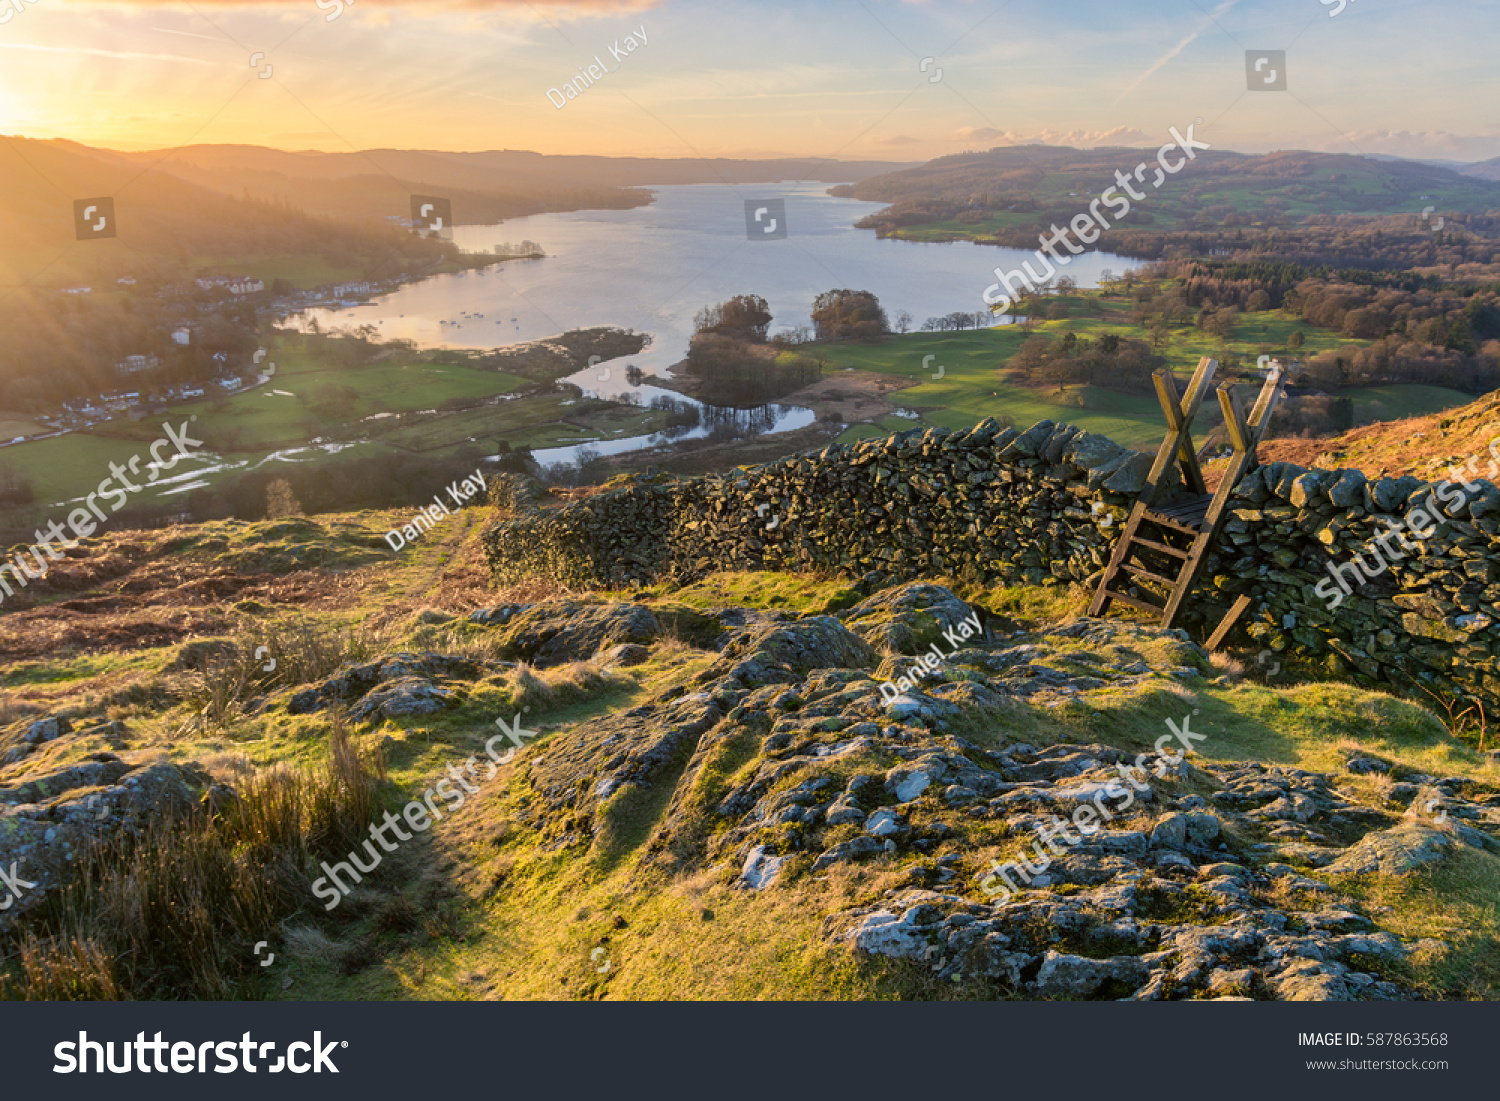 Lake Windermere in the English Lake District taken at sunrise with vibrant colours and golden morning light. #587863568